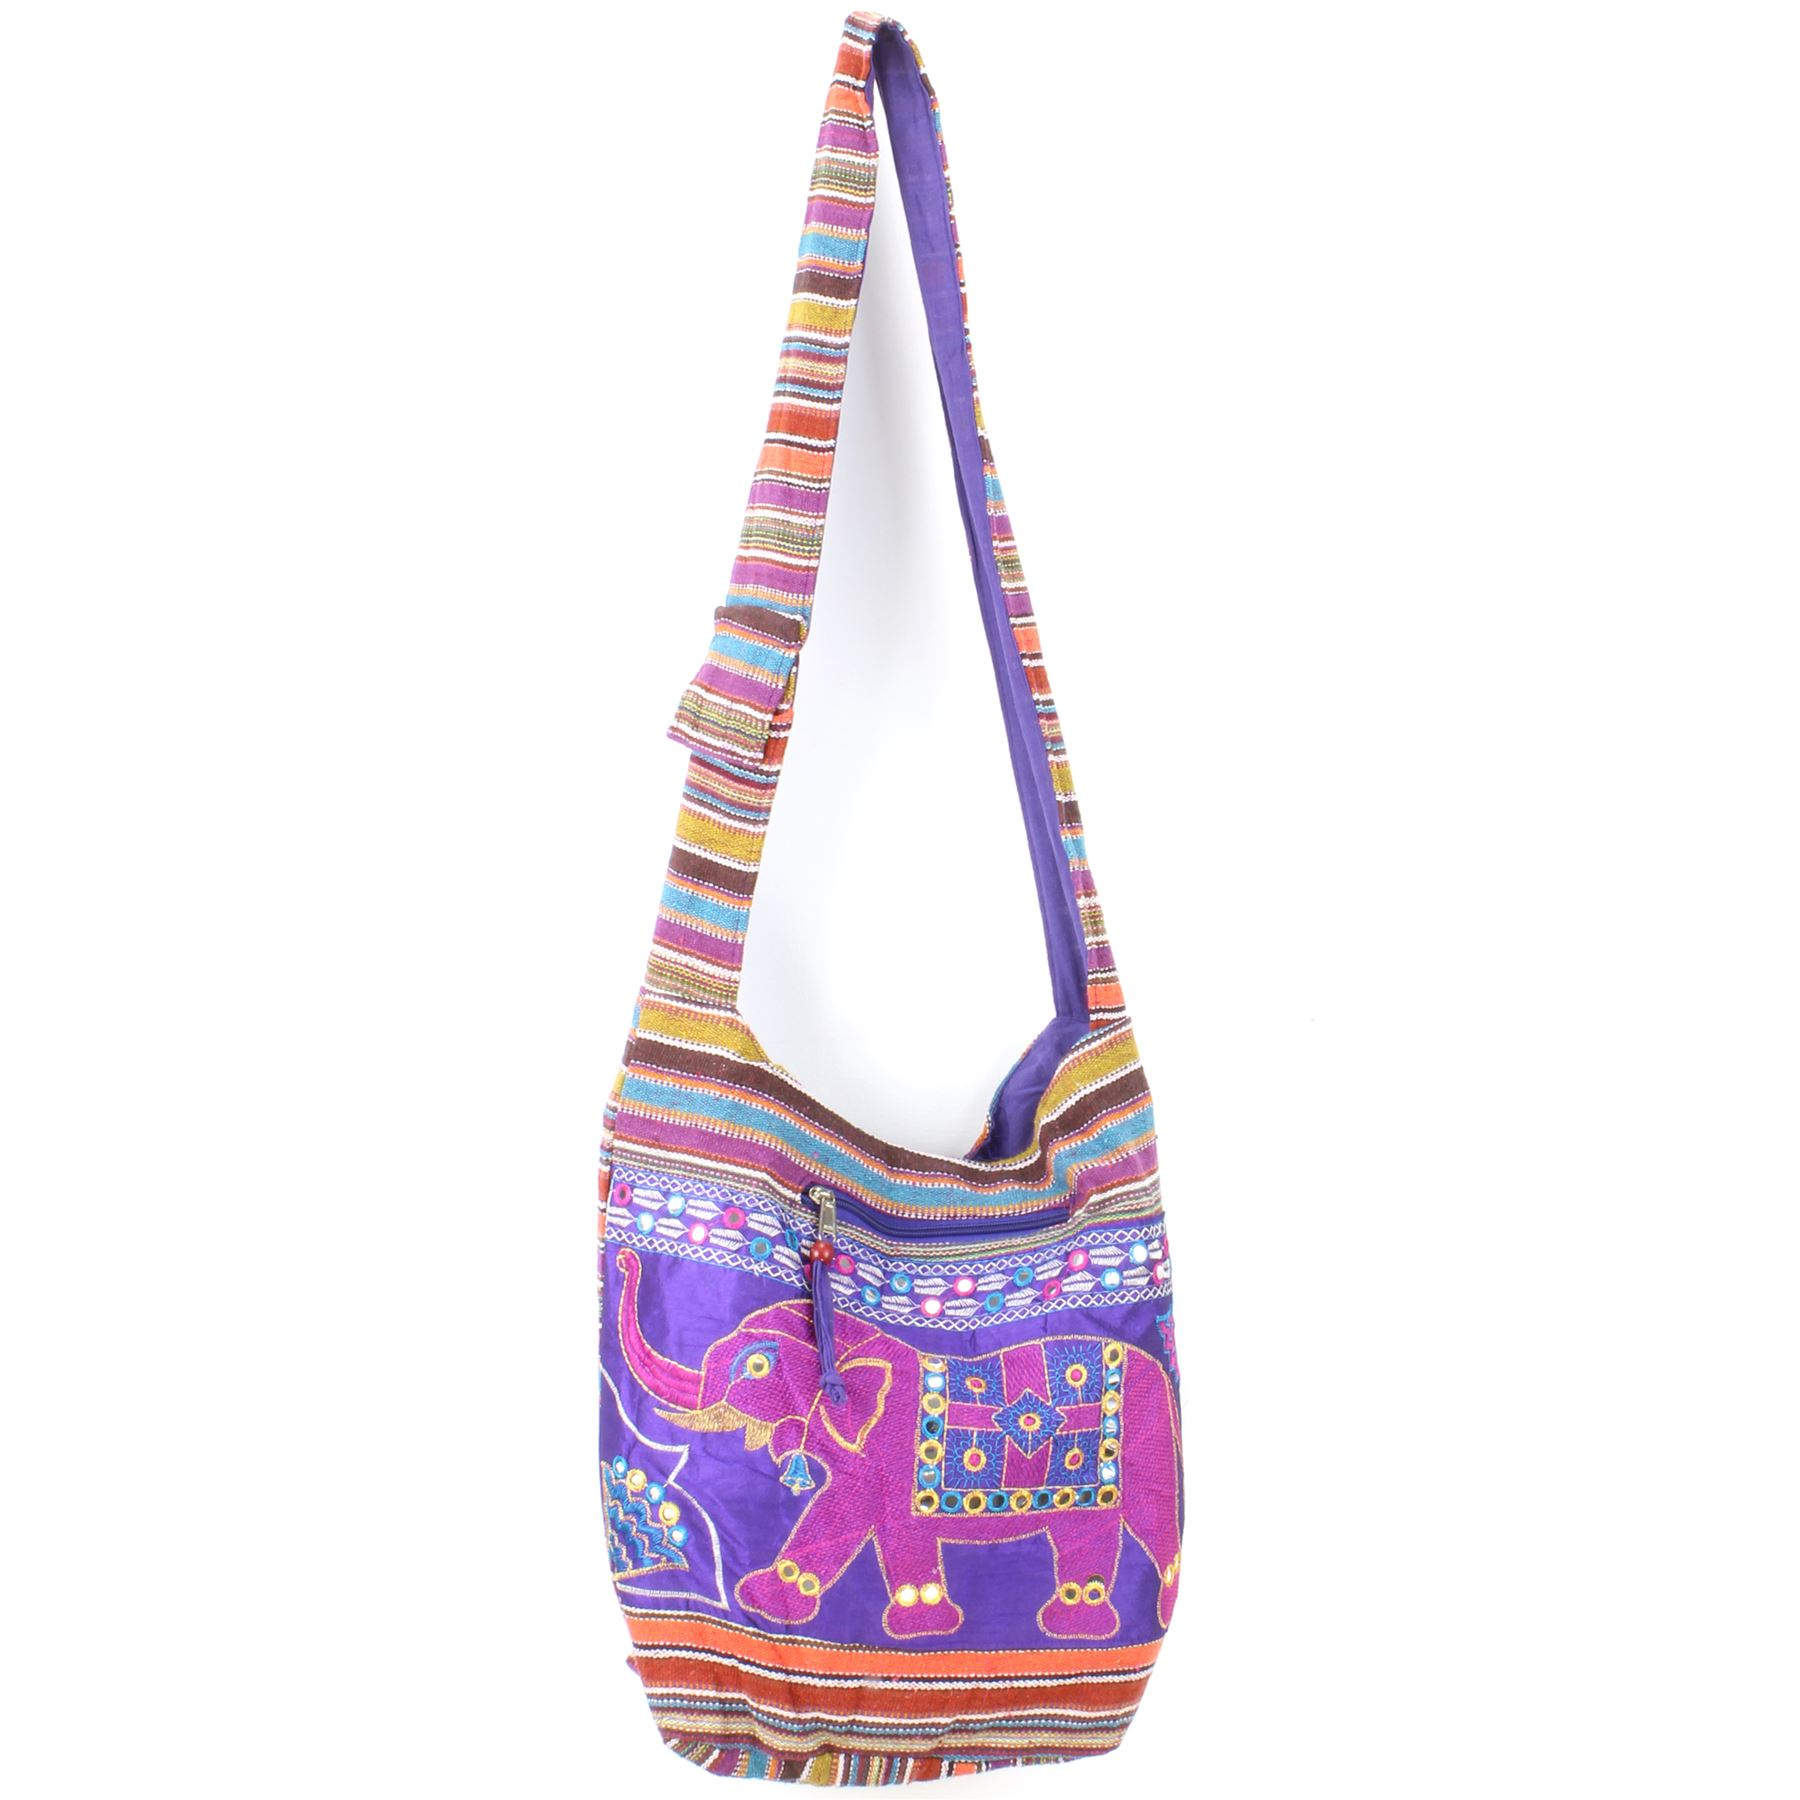 Sling Bag Elephant Messenger Crossbody Cross Body Handbag Backpack Hippie Hobo